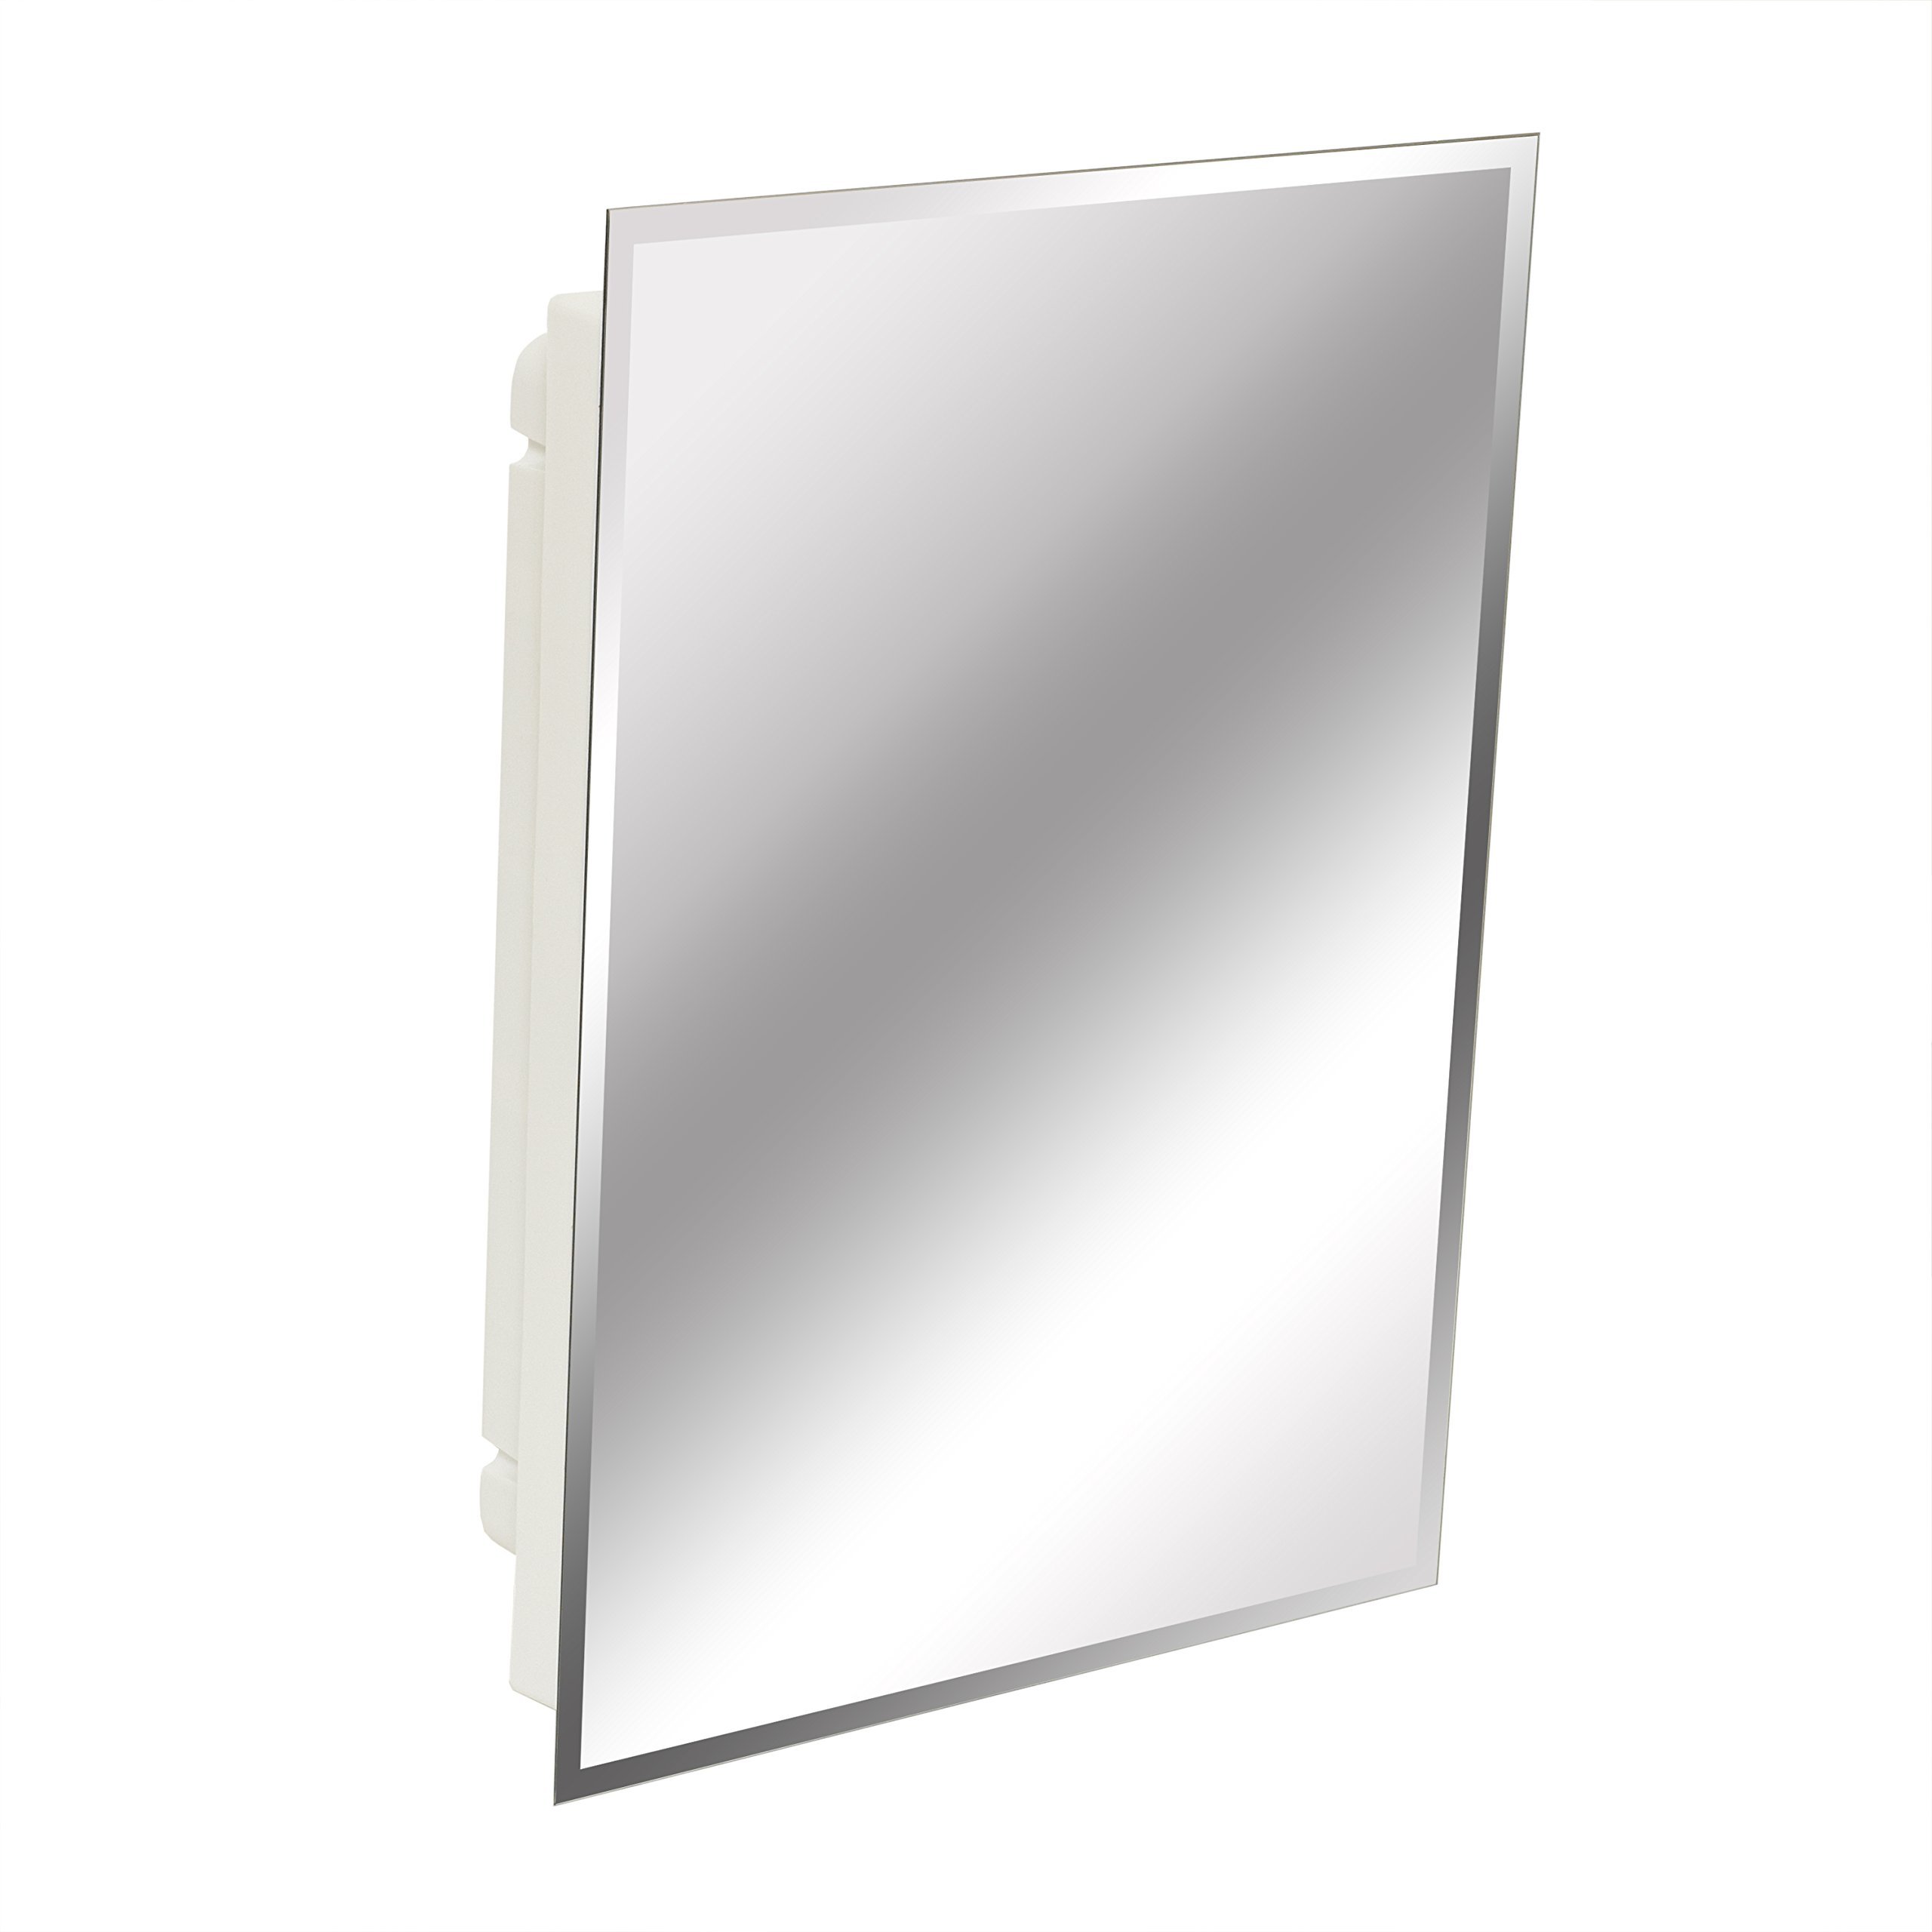 American Pride 9622WBAR12 Recessed Frameless Beveled Polished Edge Mirror Medicine Cabinet, 16 x 22'' by American Pride